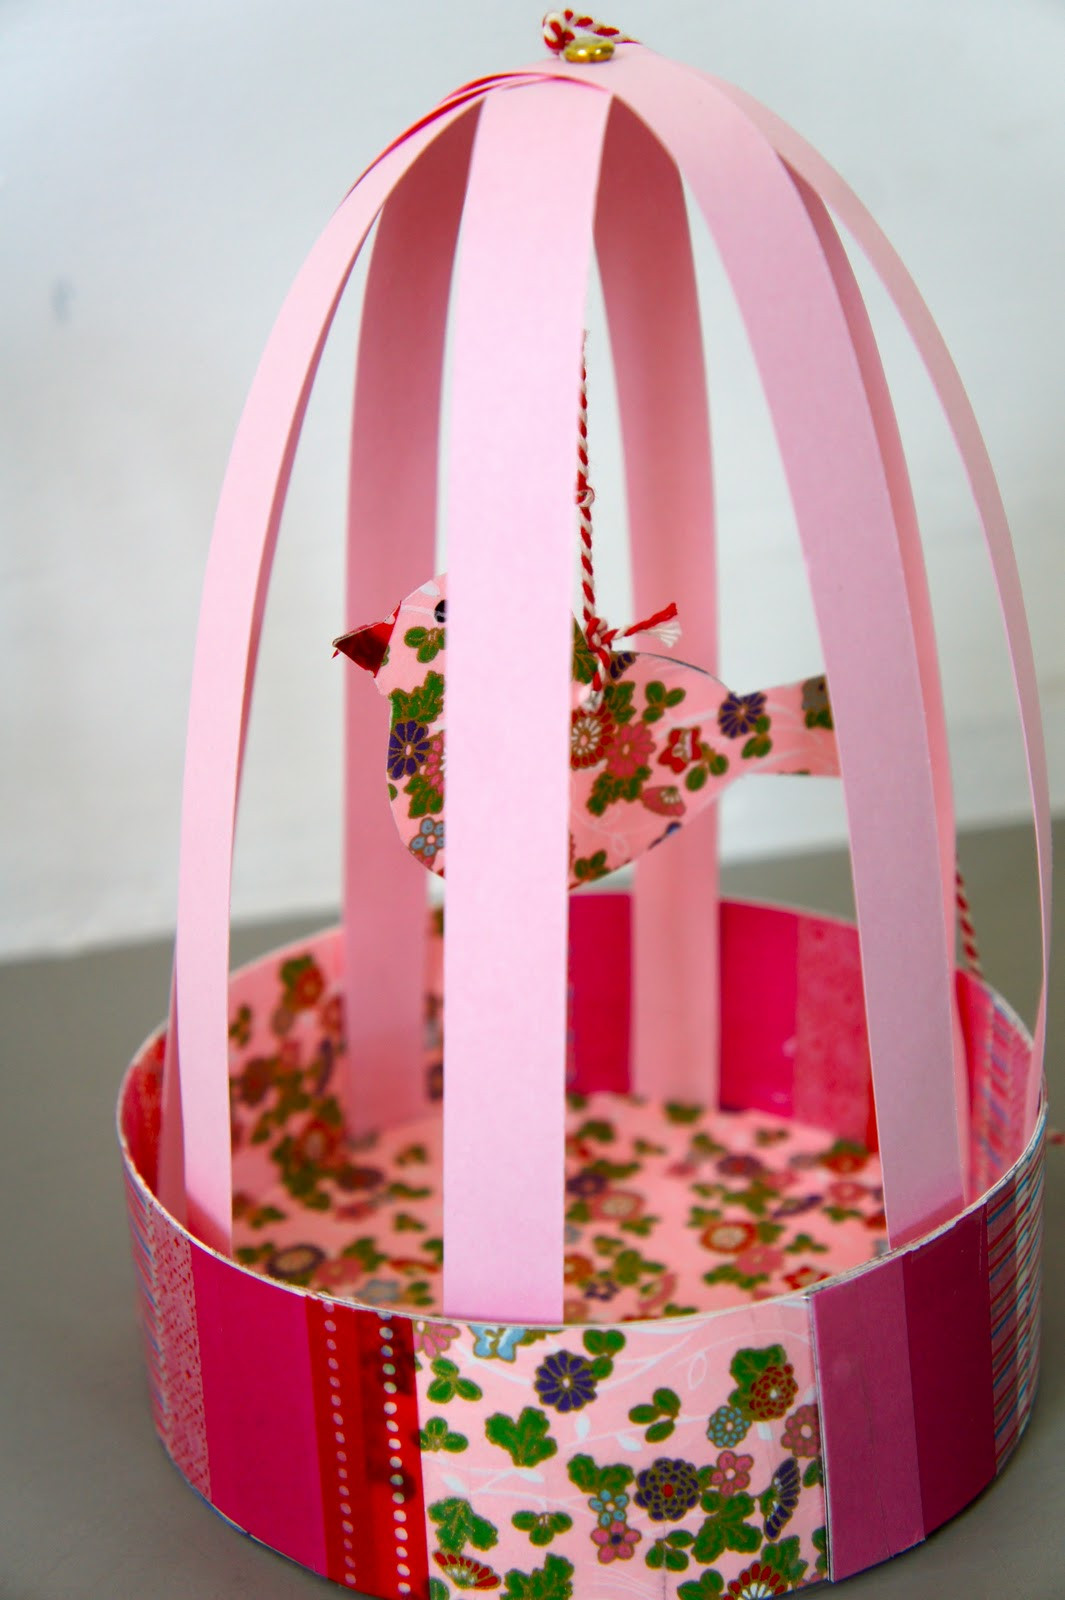 Best ideas about Crafts Ideas For Kids . Save or Pin 30 Cute Craft Ideas Now.